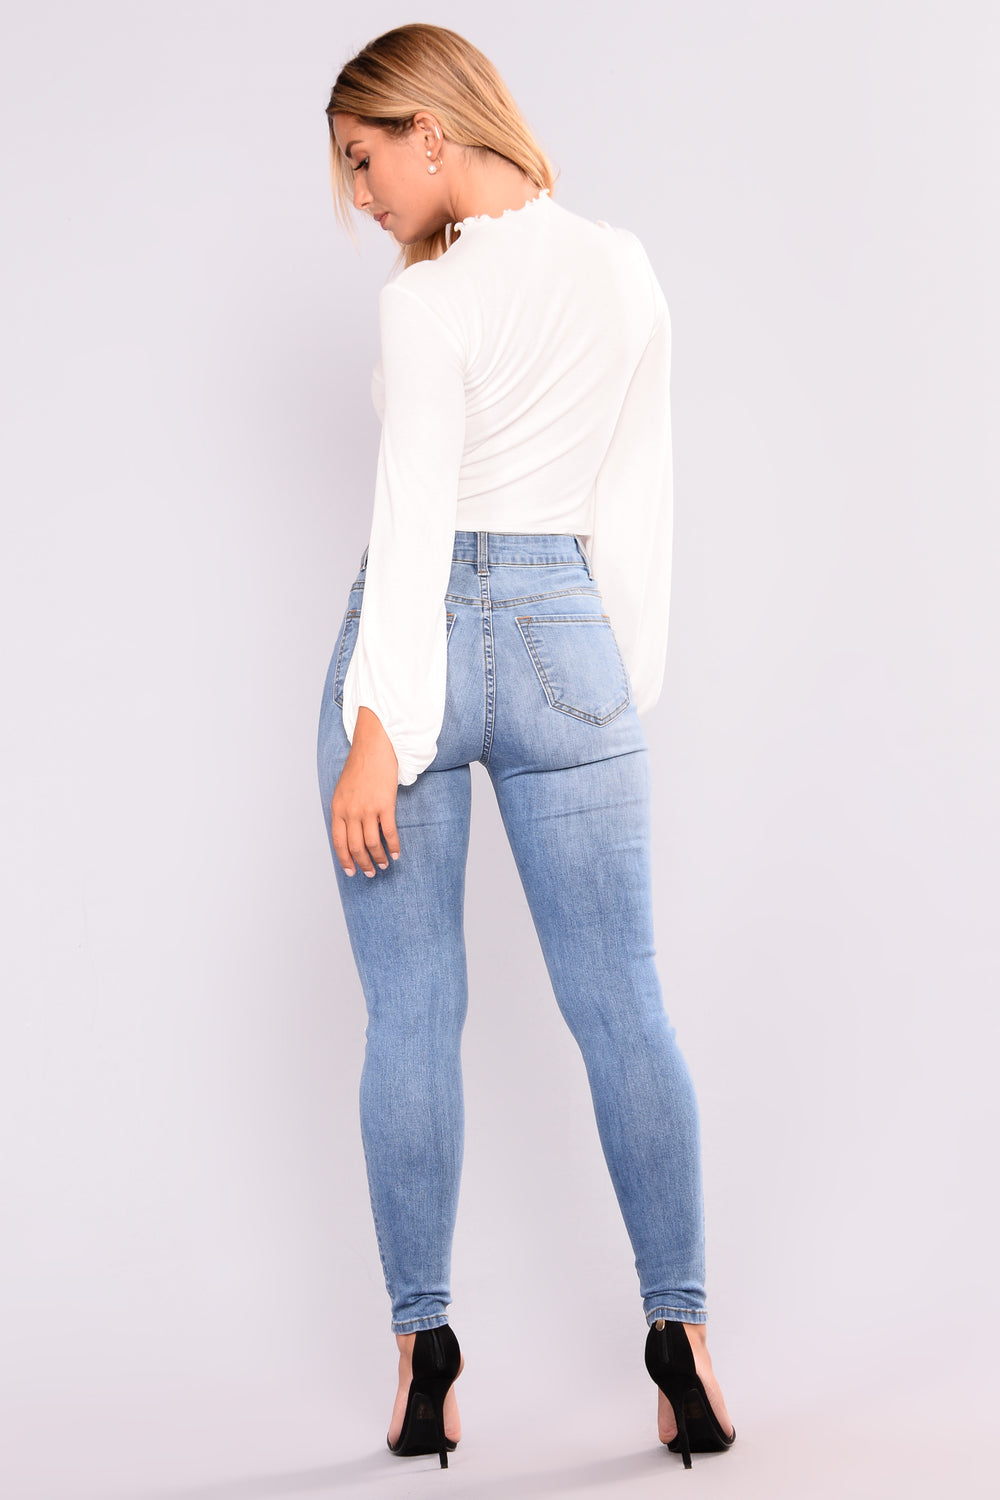 Nixie Pearl Skinny Jeans - Light Blue Wash